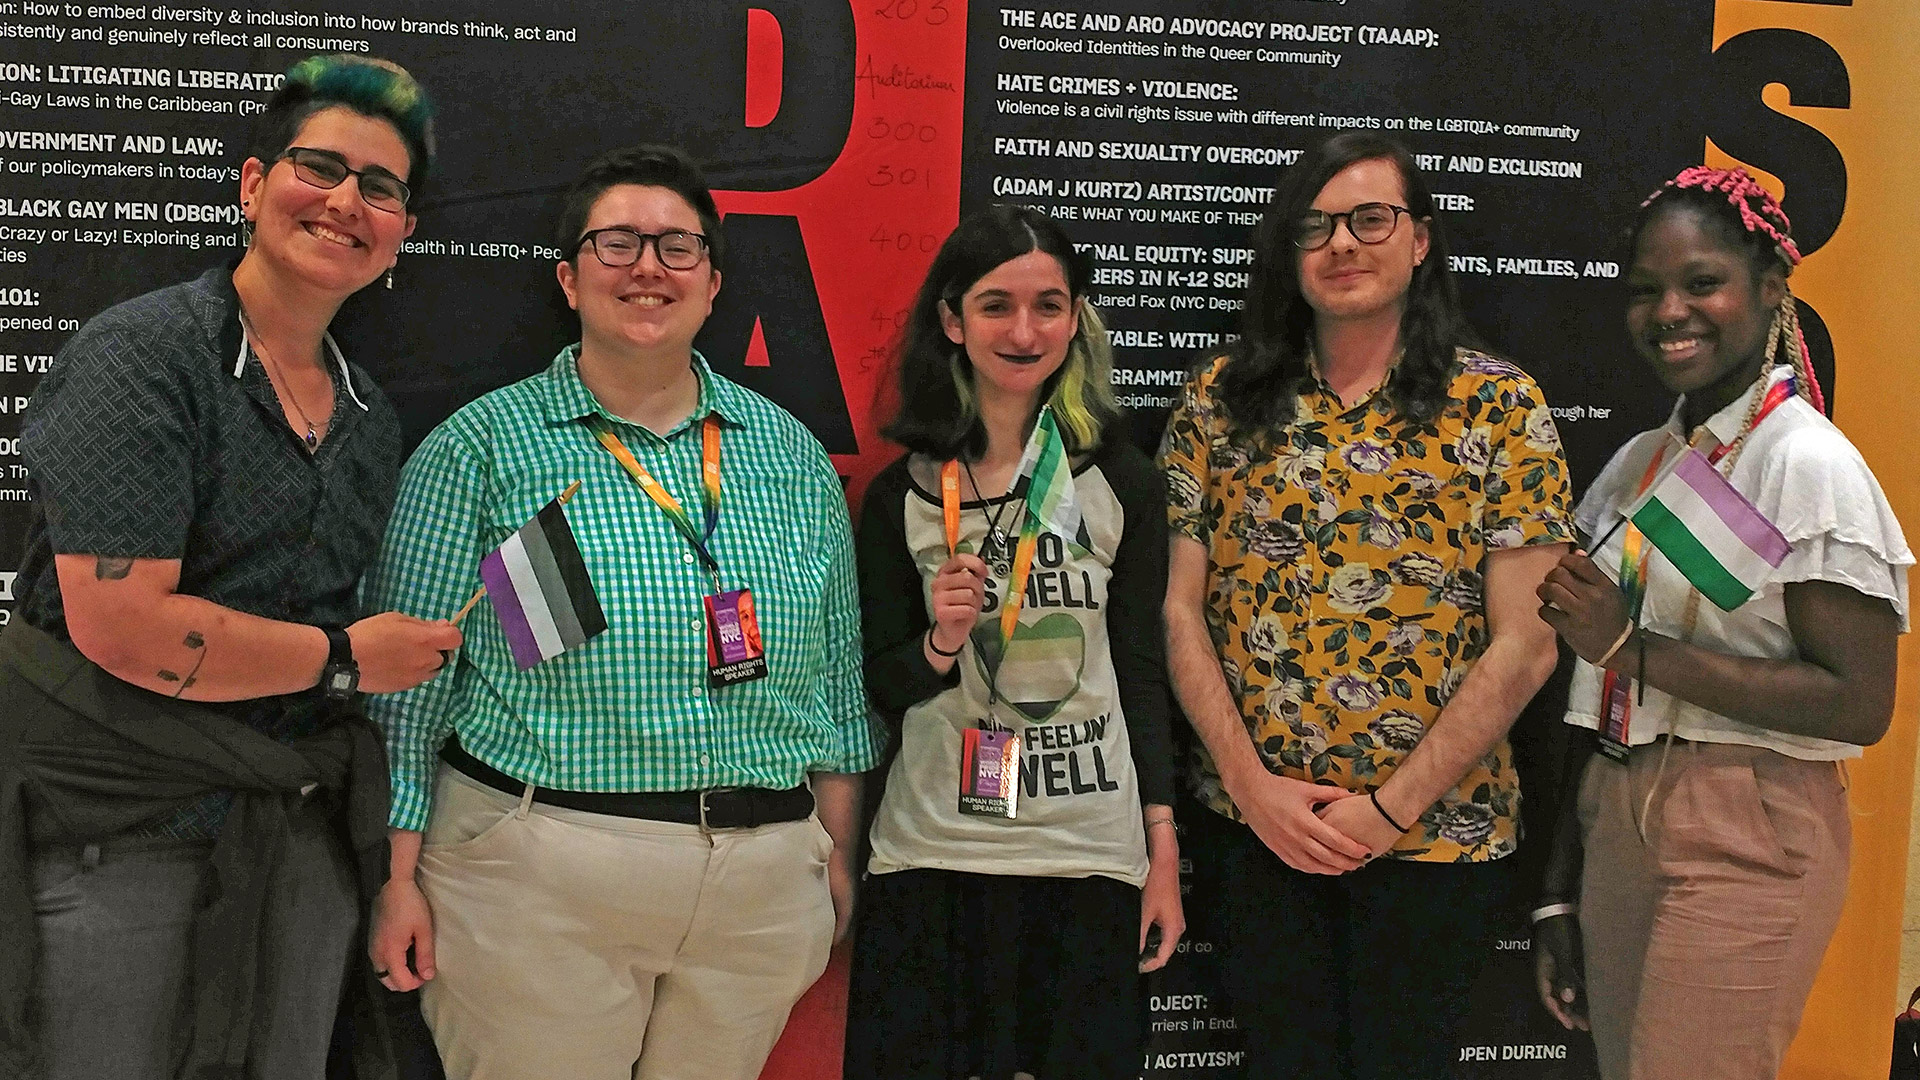 Five people standing in front of the conference schedule poster, holding the asexual, aromantic, and genderqueer flags.